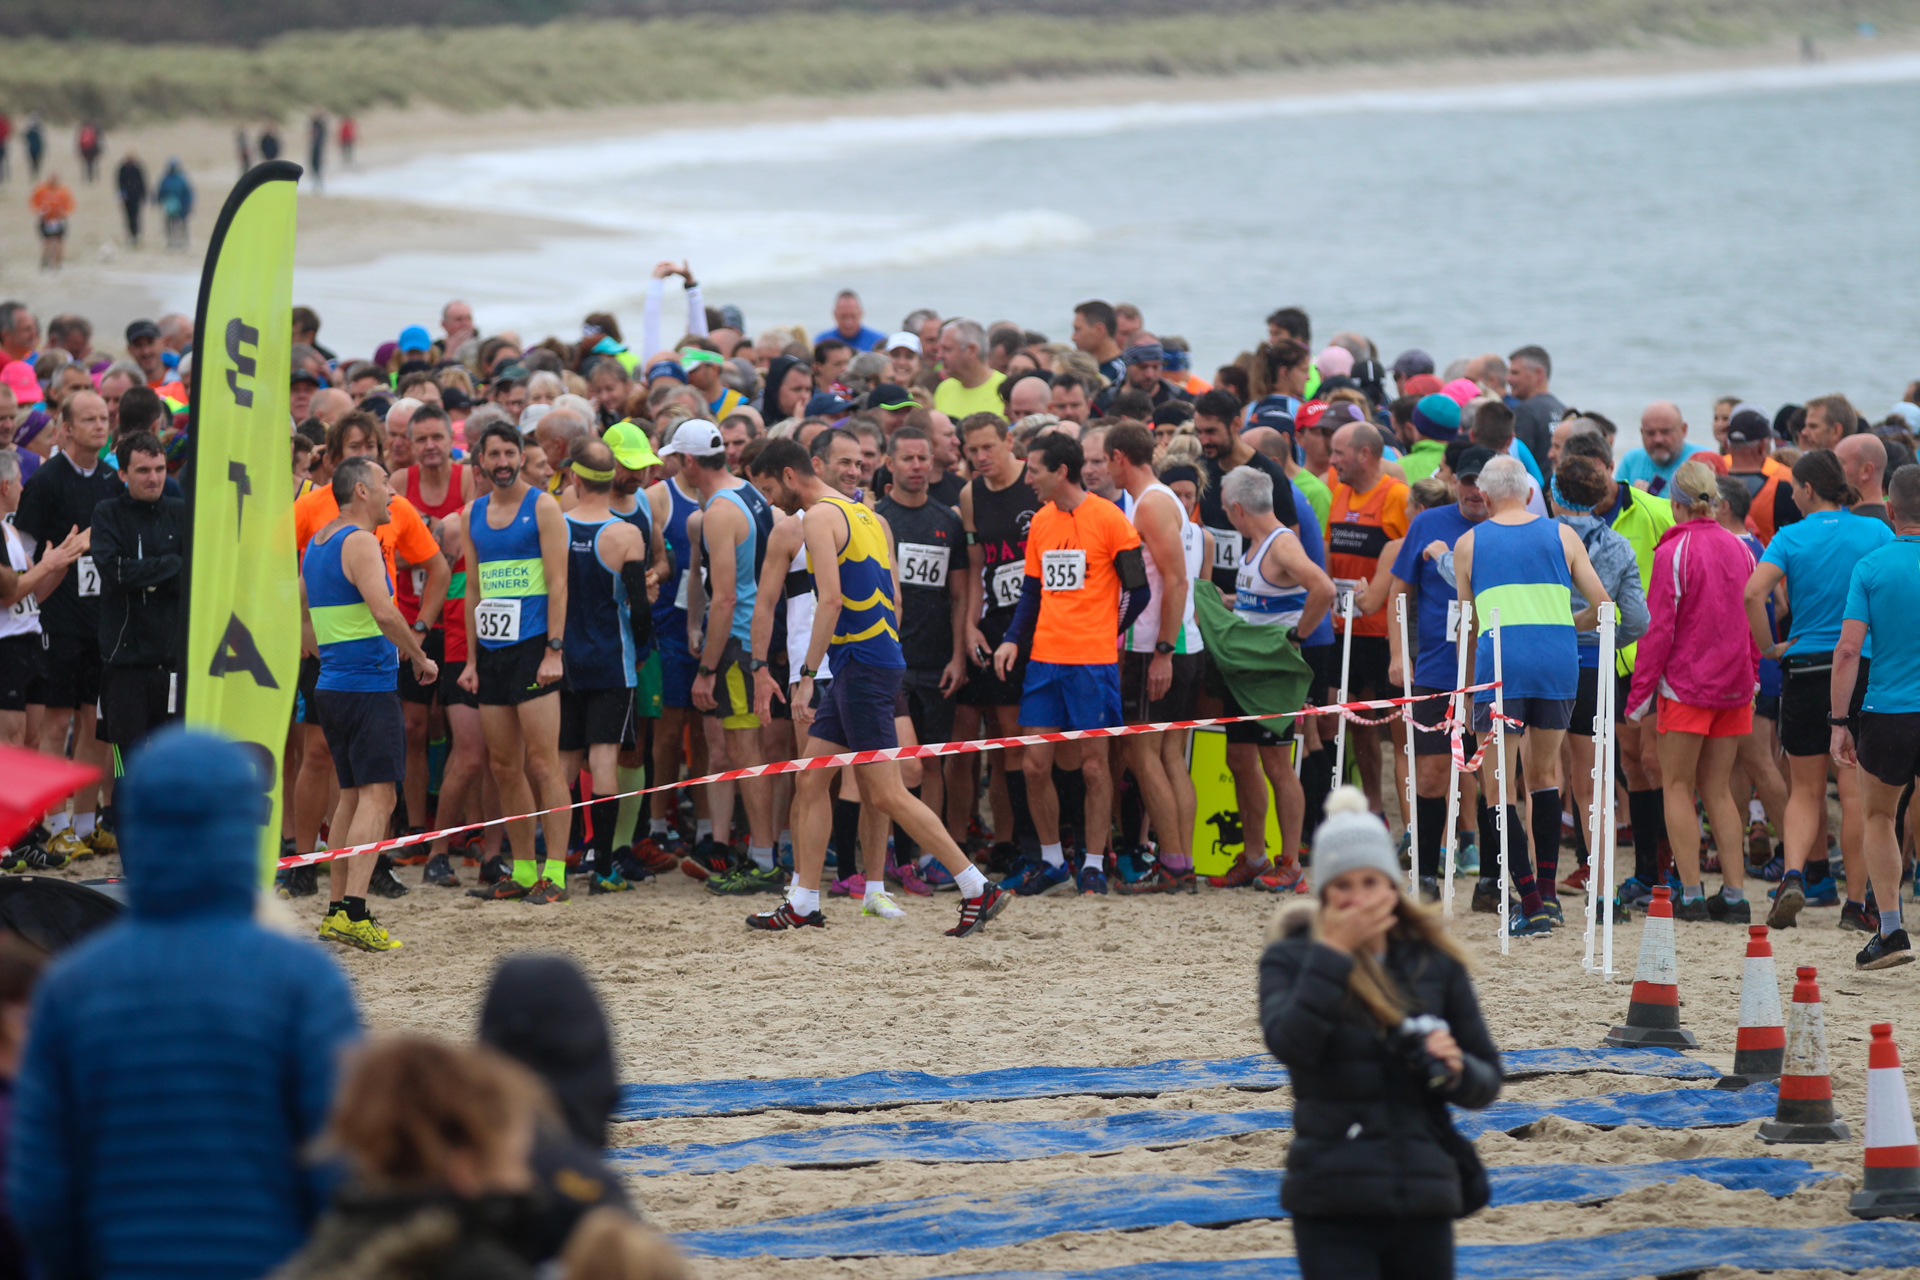 Pictures: Hundreds take part in the rough, tough and very sandy Studland Stampede